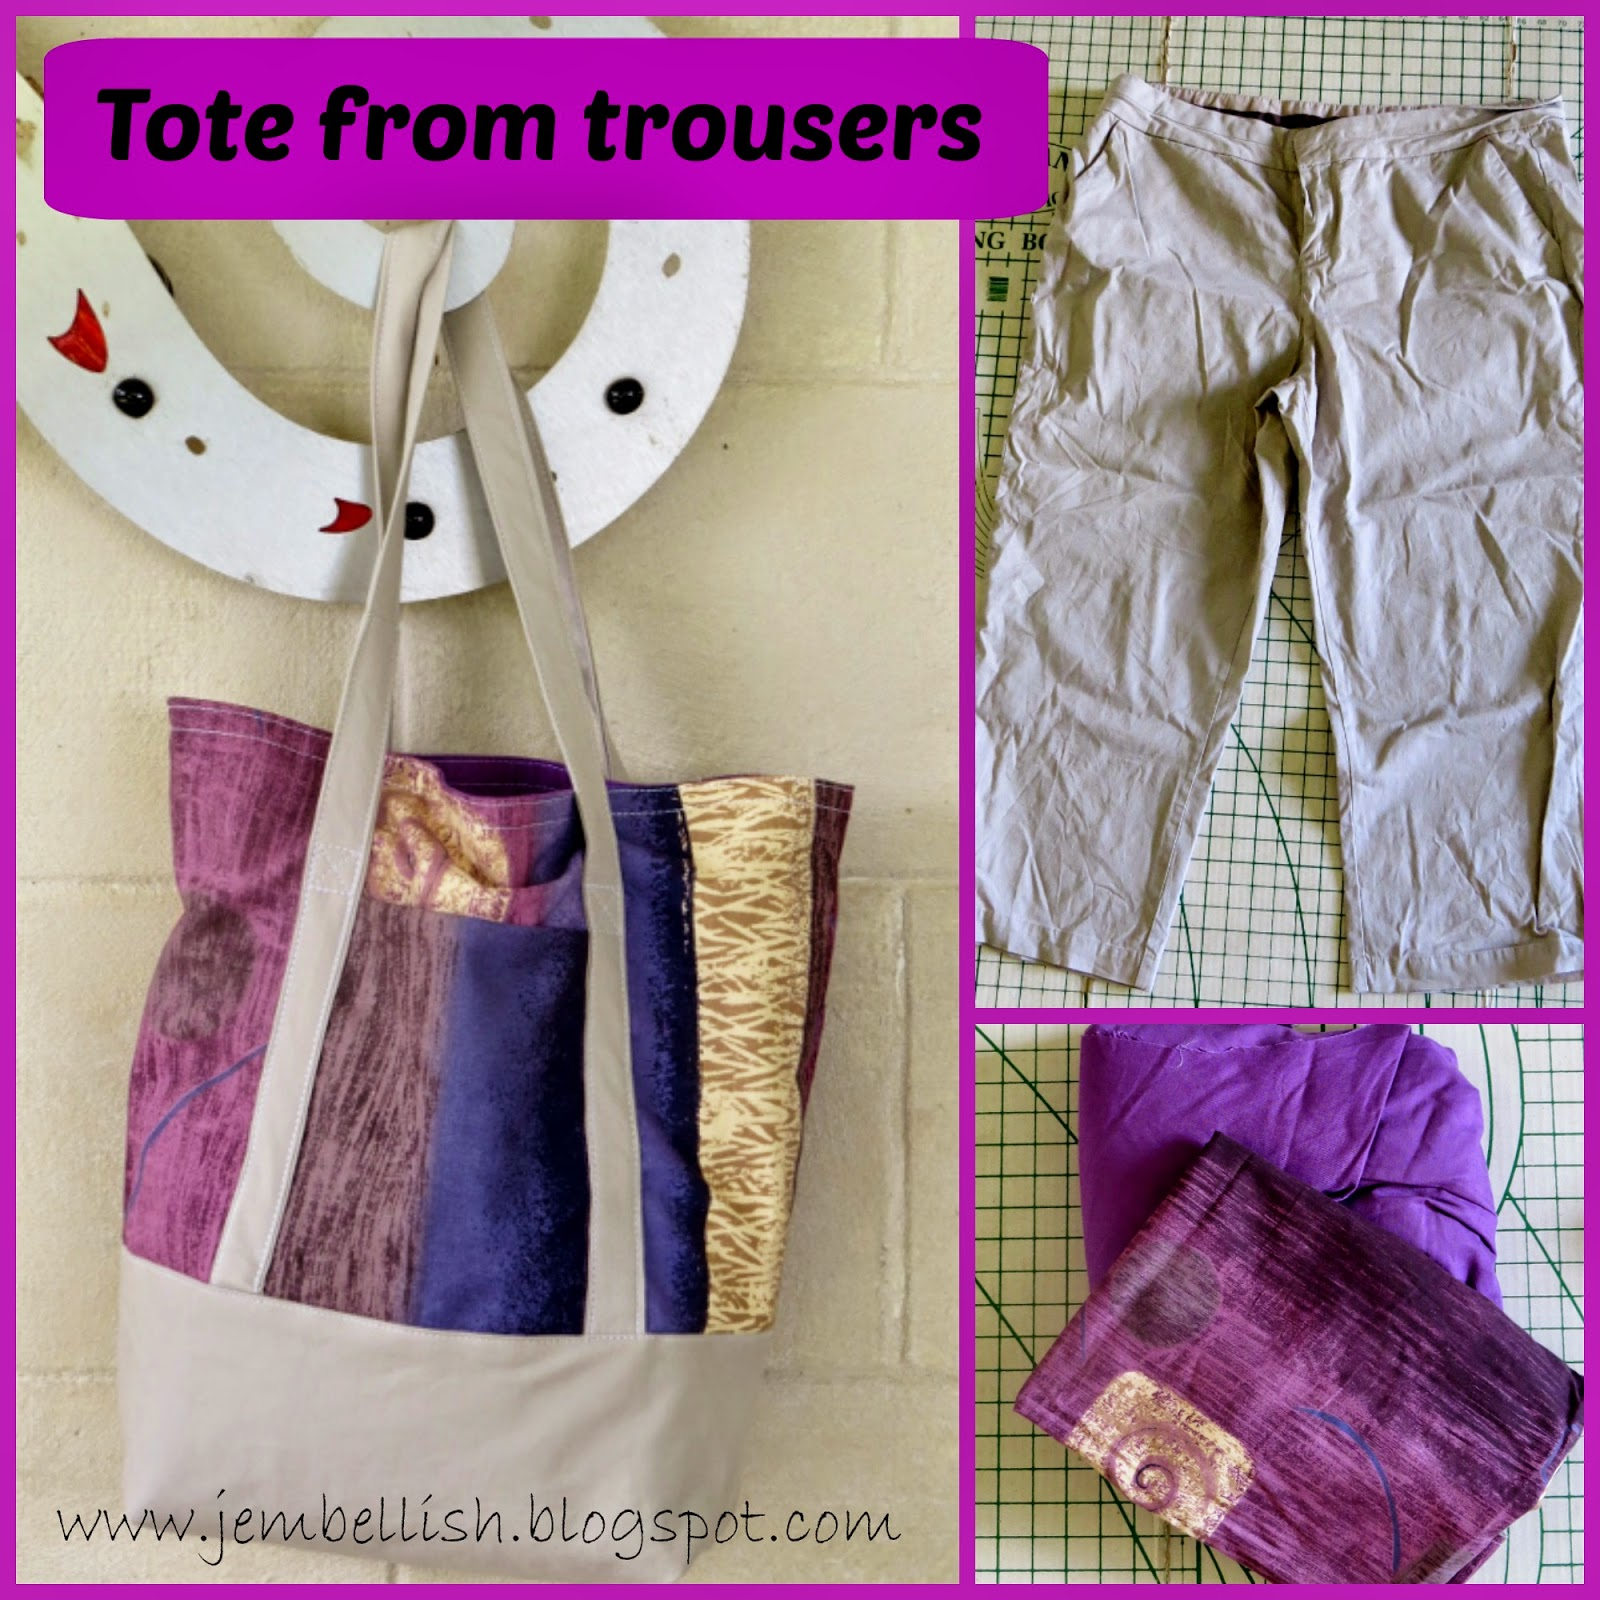 Lined Tote upcycled from Trousers